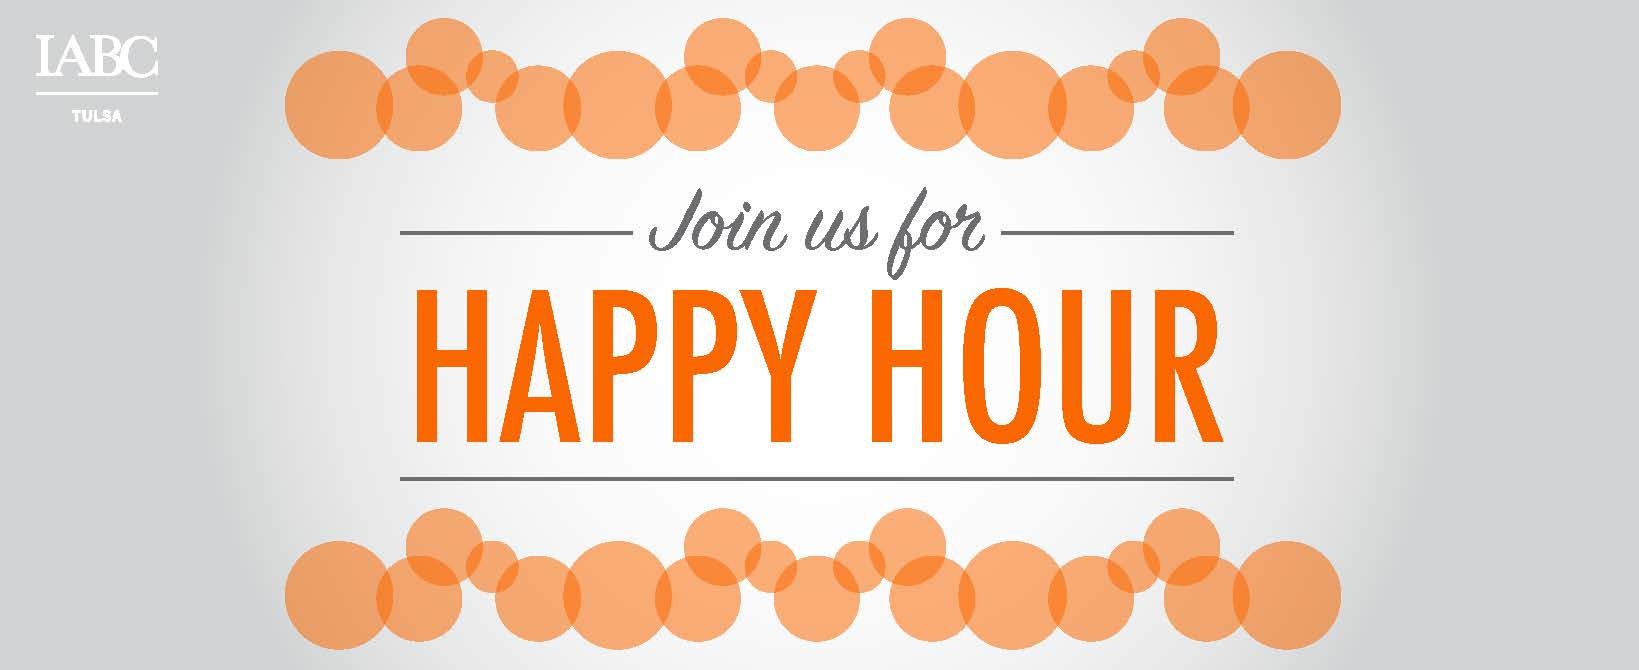 Join us for a Communicator Happy Hour on July 23!